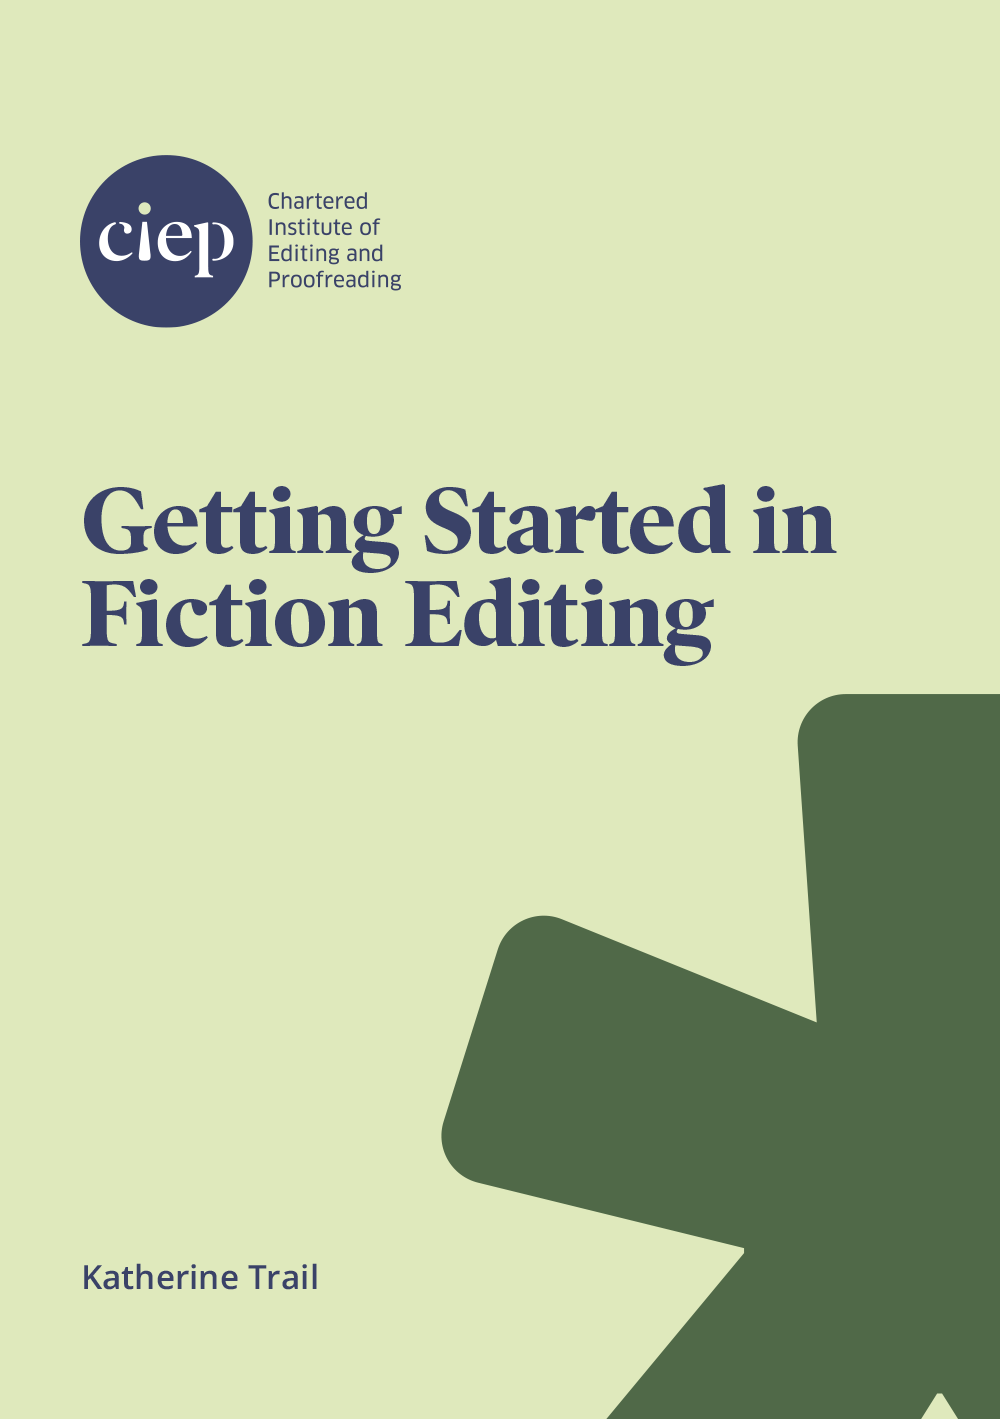 Cover of Getting Started in Fiction Editing